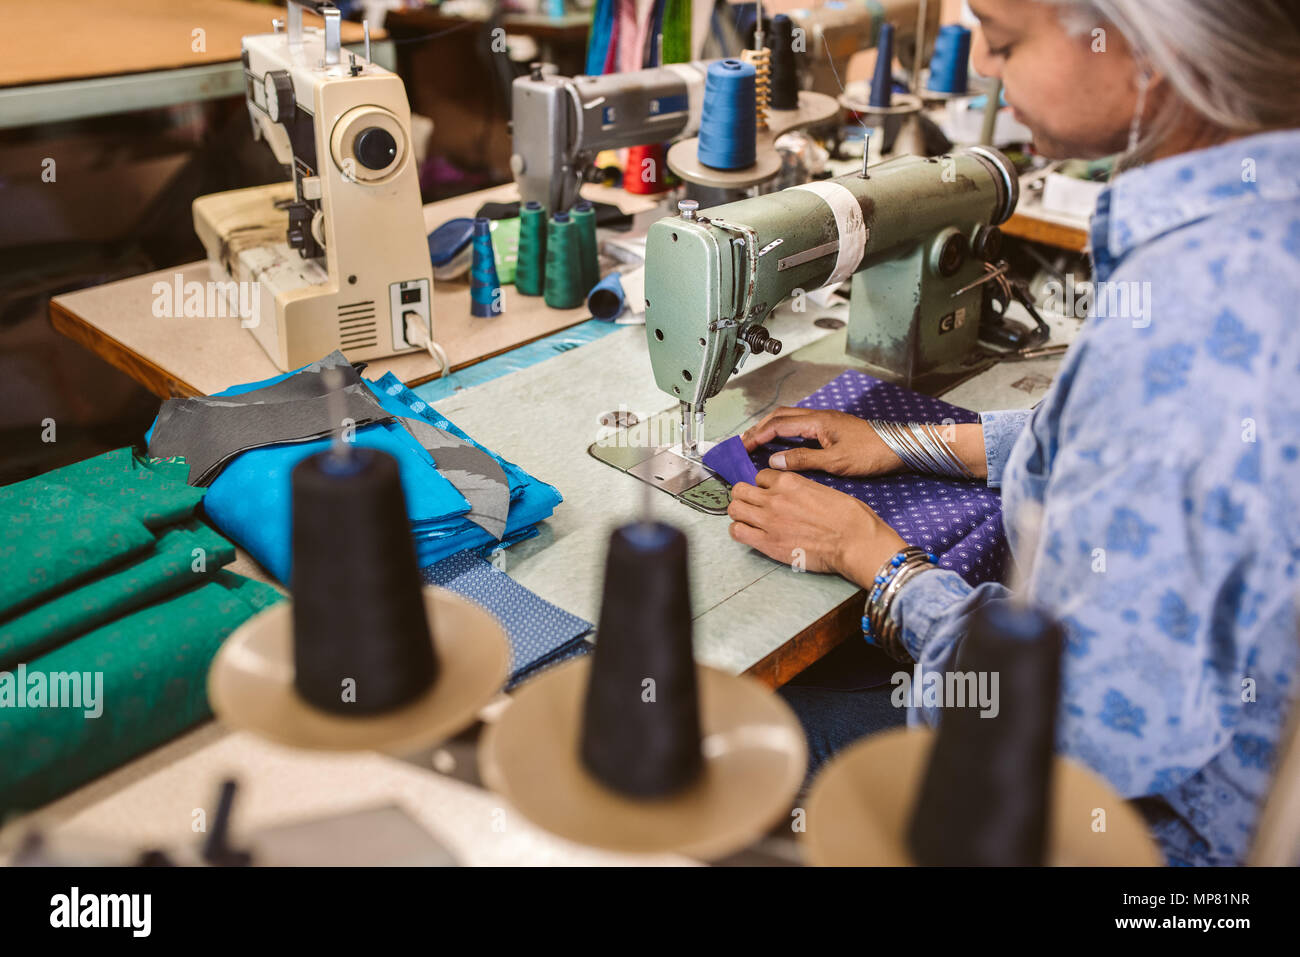 Mature woman working on a sewing machine in her workshop - Stock Image